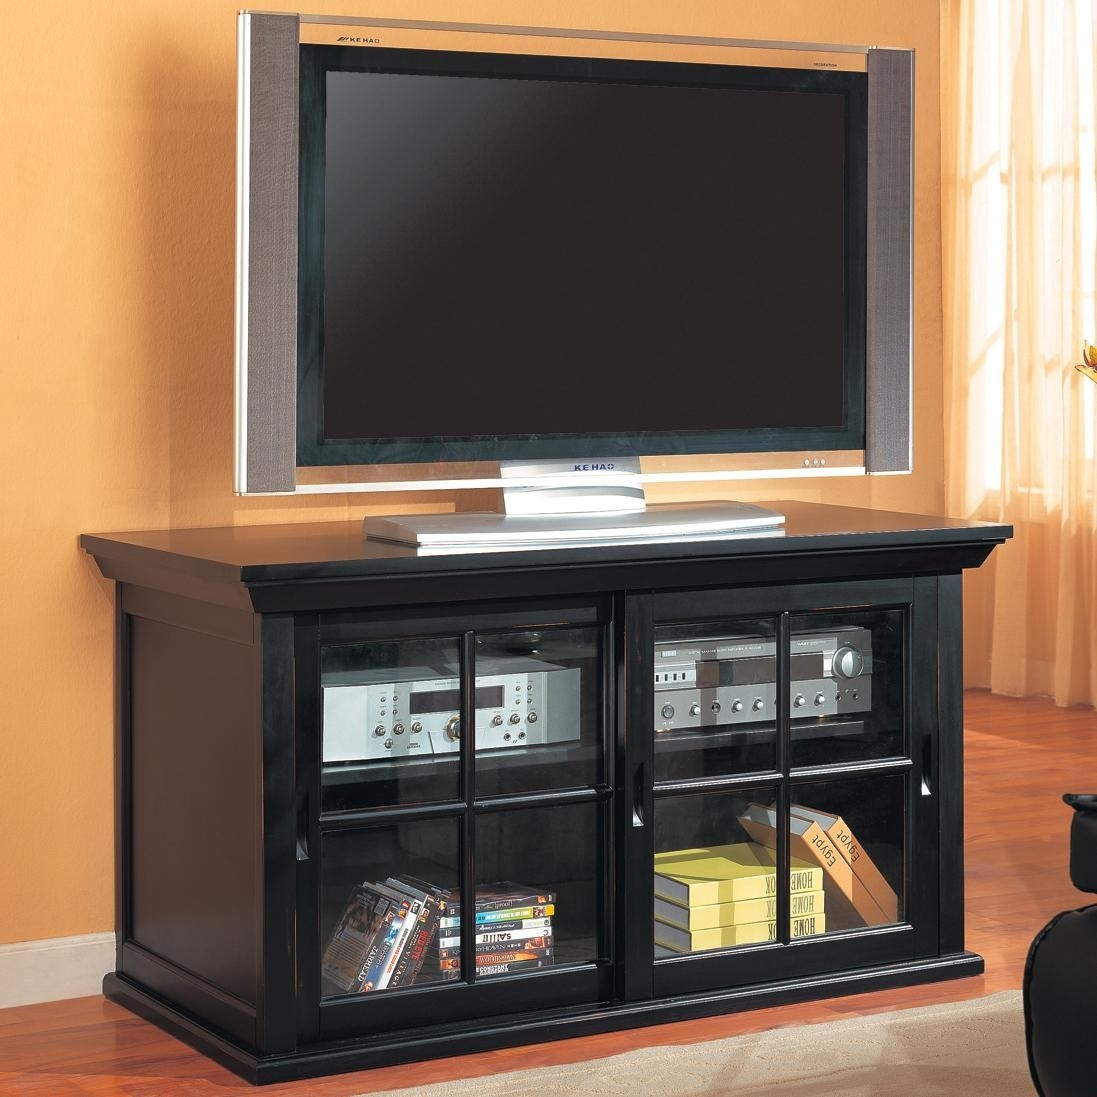 Tv Stand With Sliding Glass Doorstv stands transitional media console with sliding glass doors